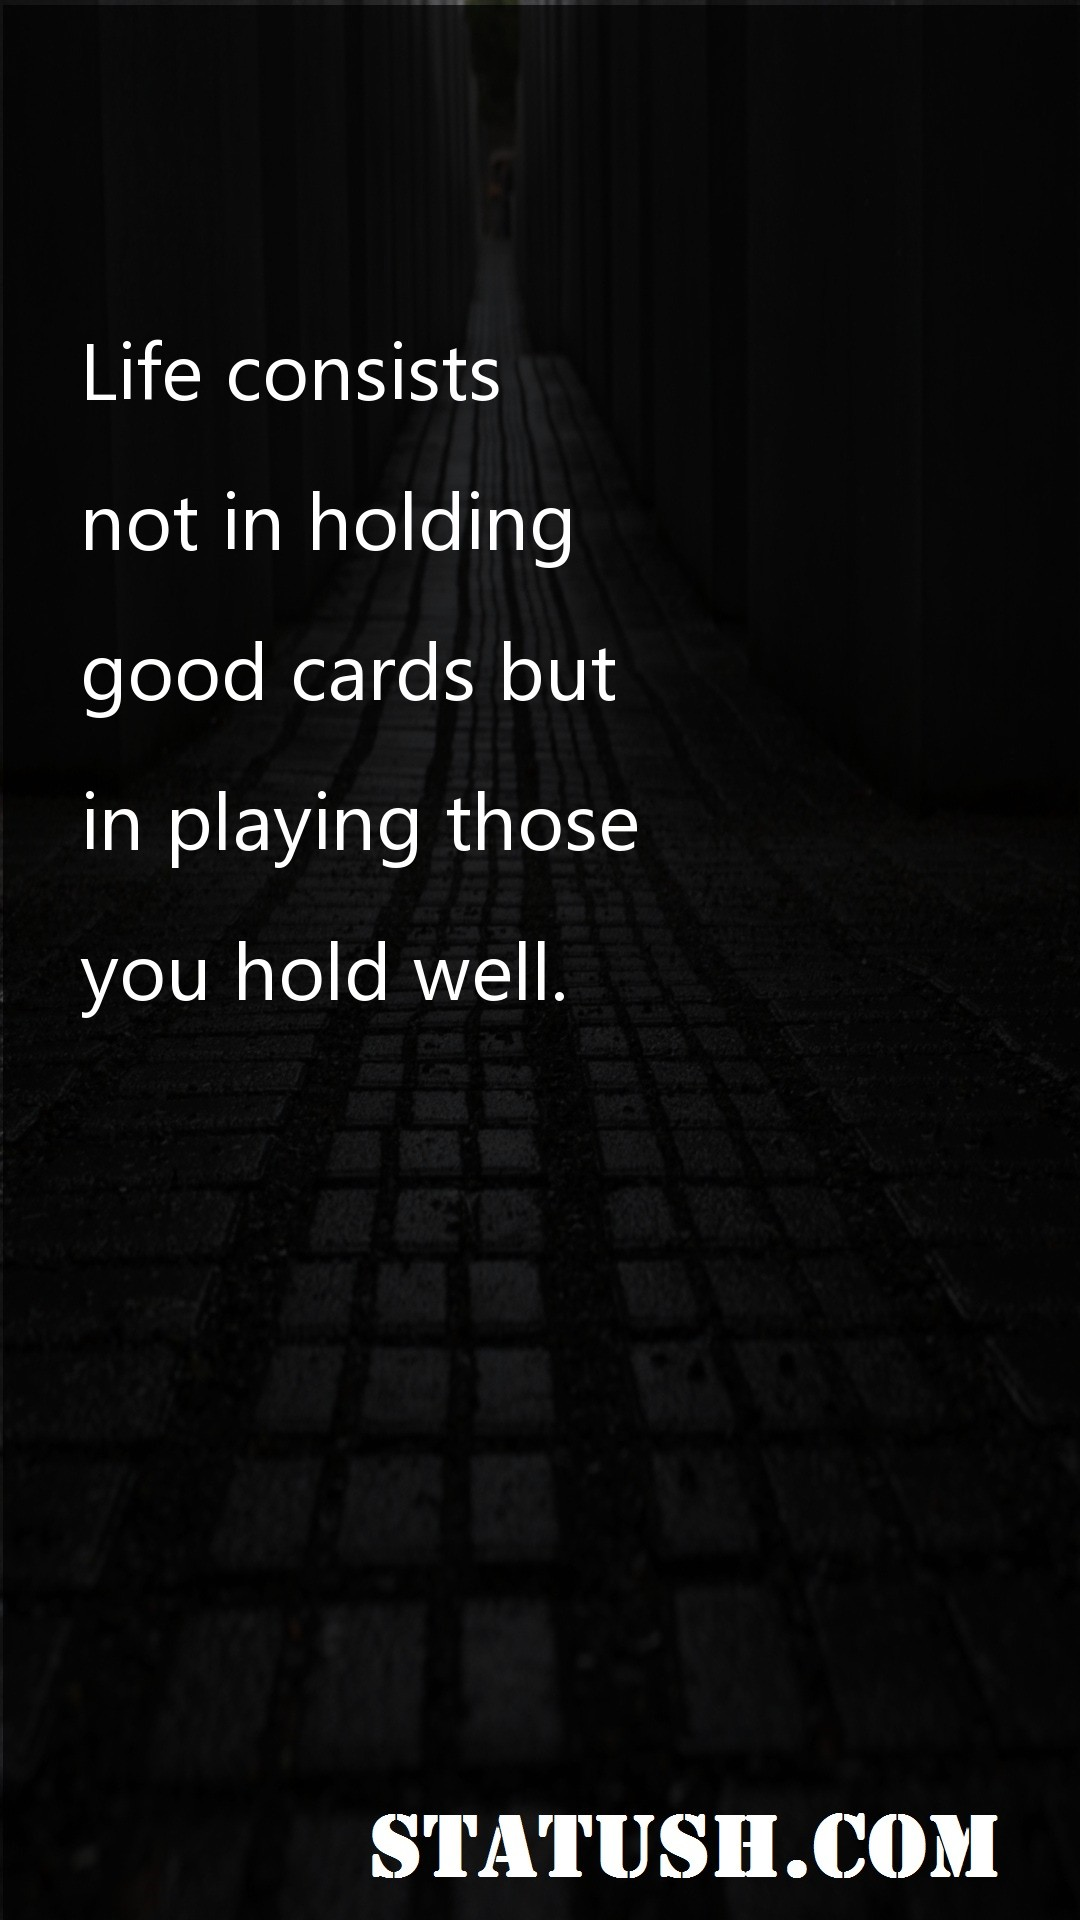 Life consists not in holding